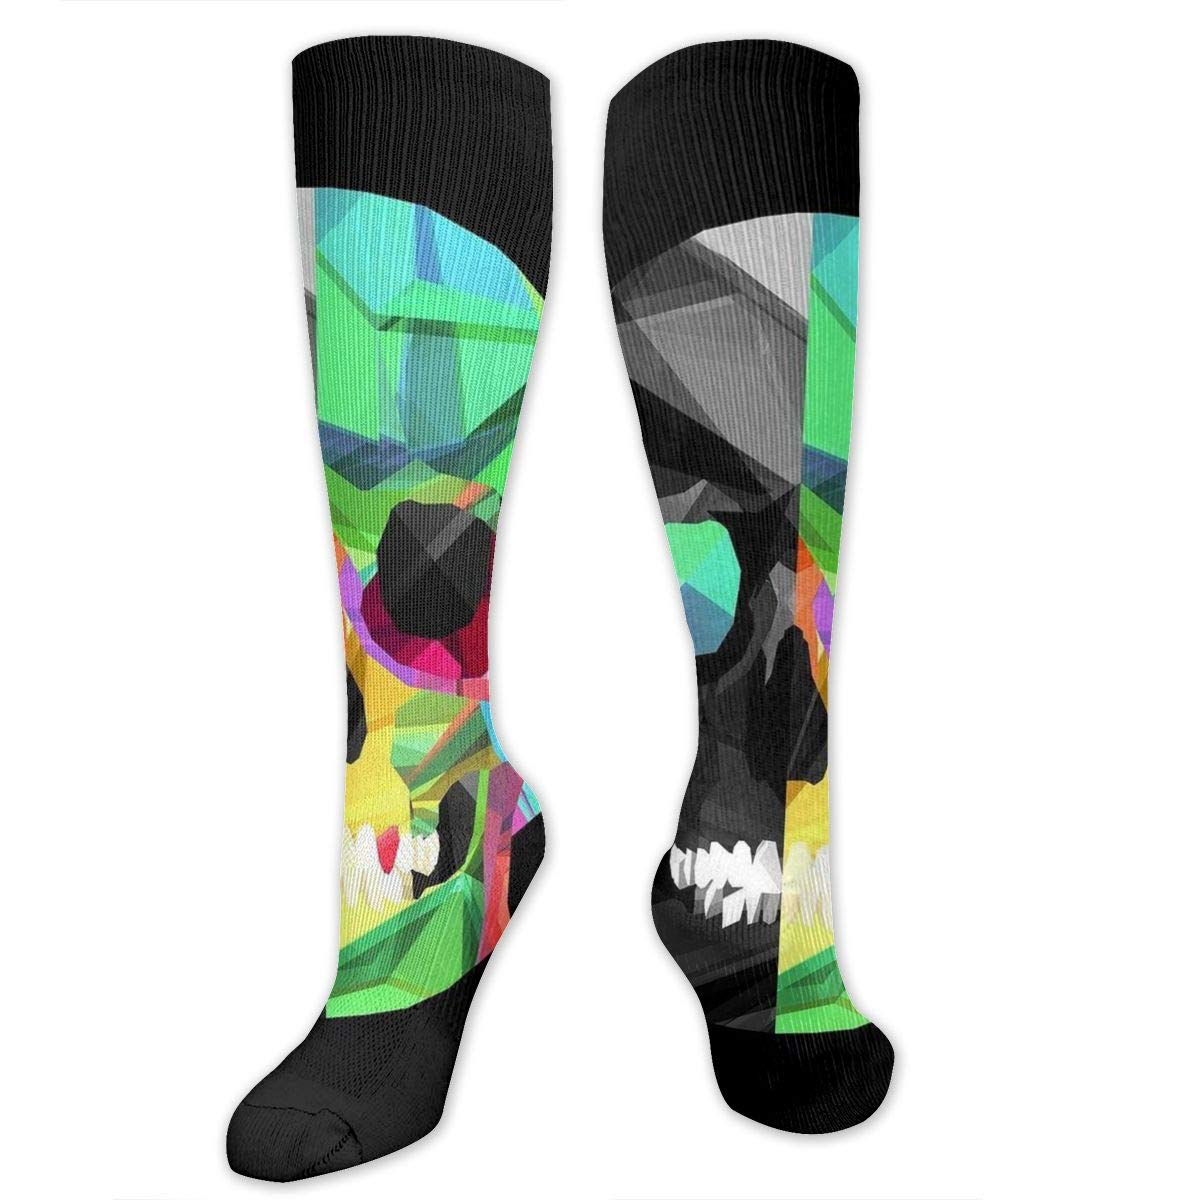 Skullsocks Uniquely Designed Steamed Bread Street Hipster Print Custom Socks for Men /& Women-Best for Running,Athletic,Medical,Pregnancy and Travel